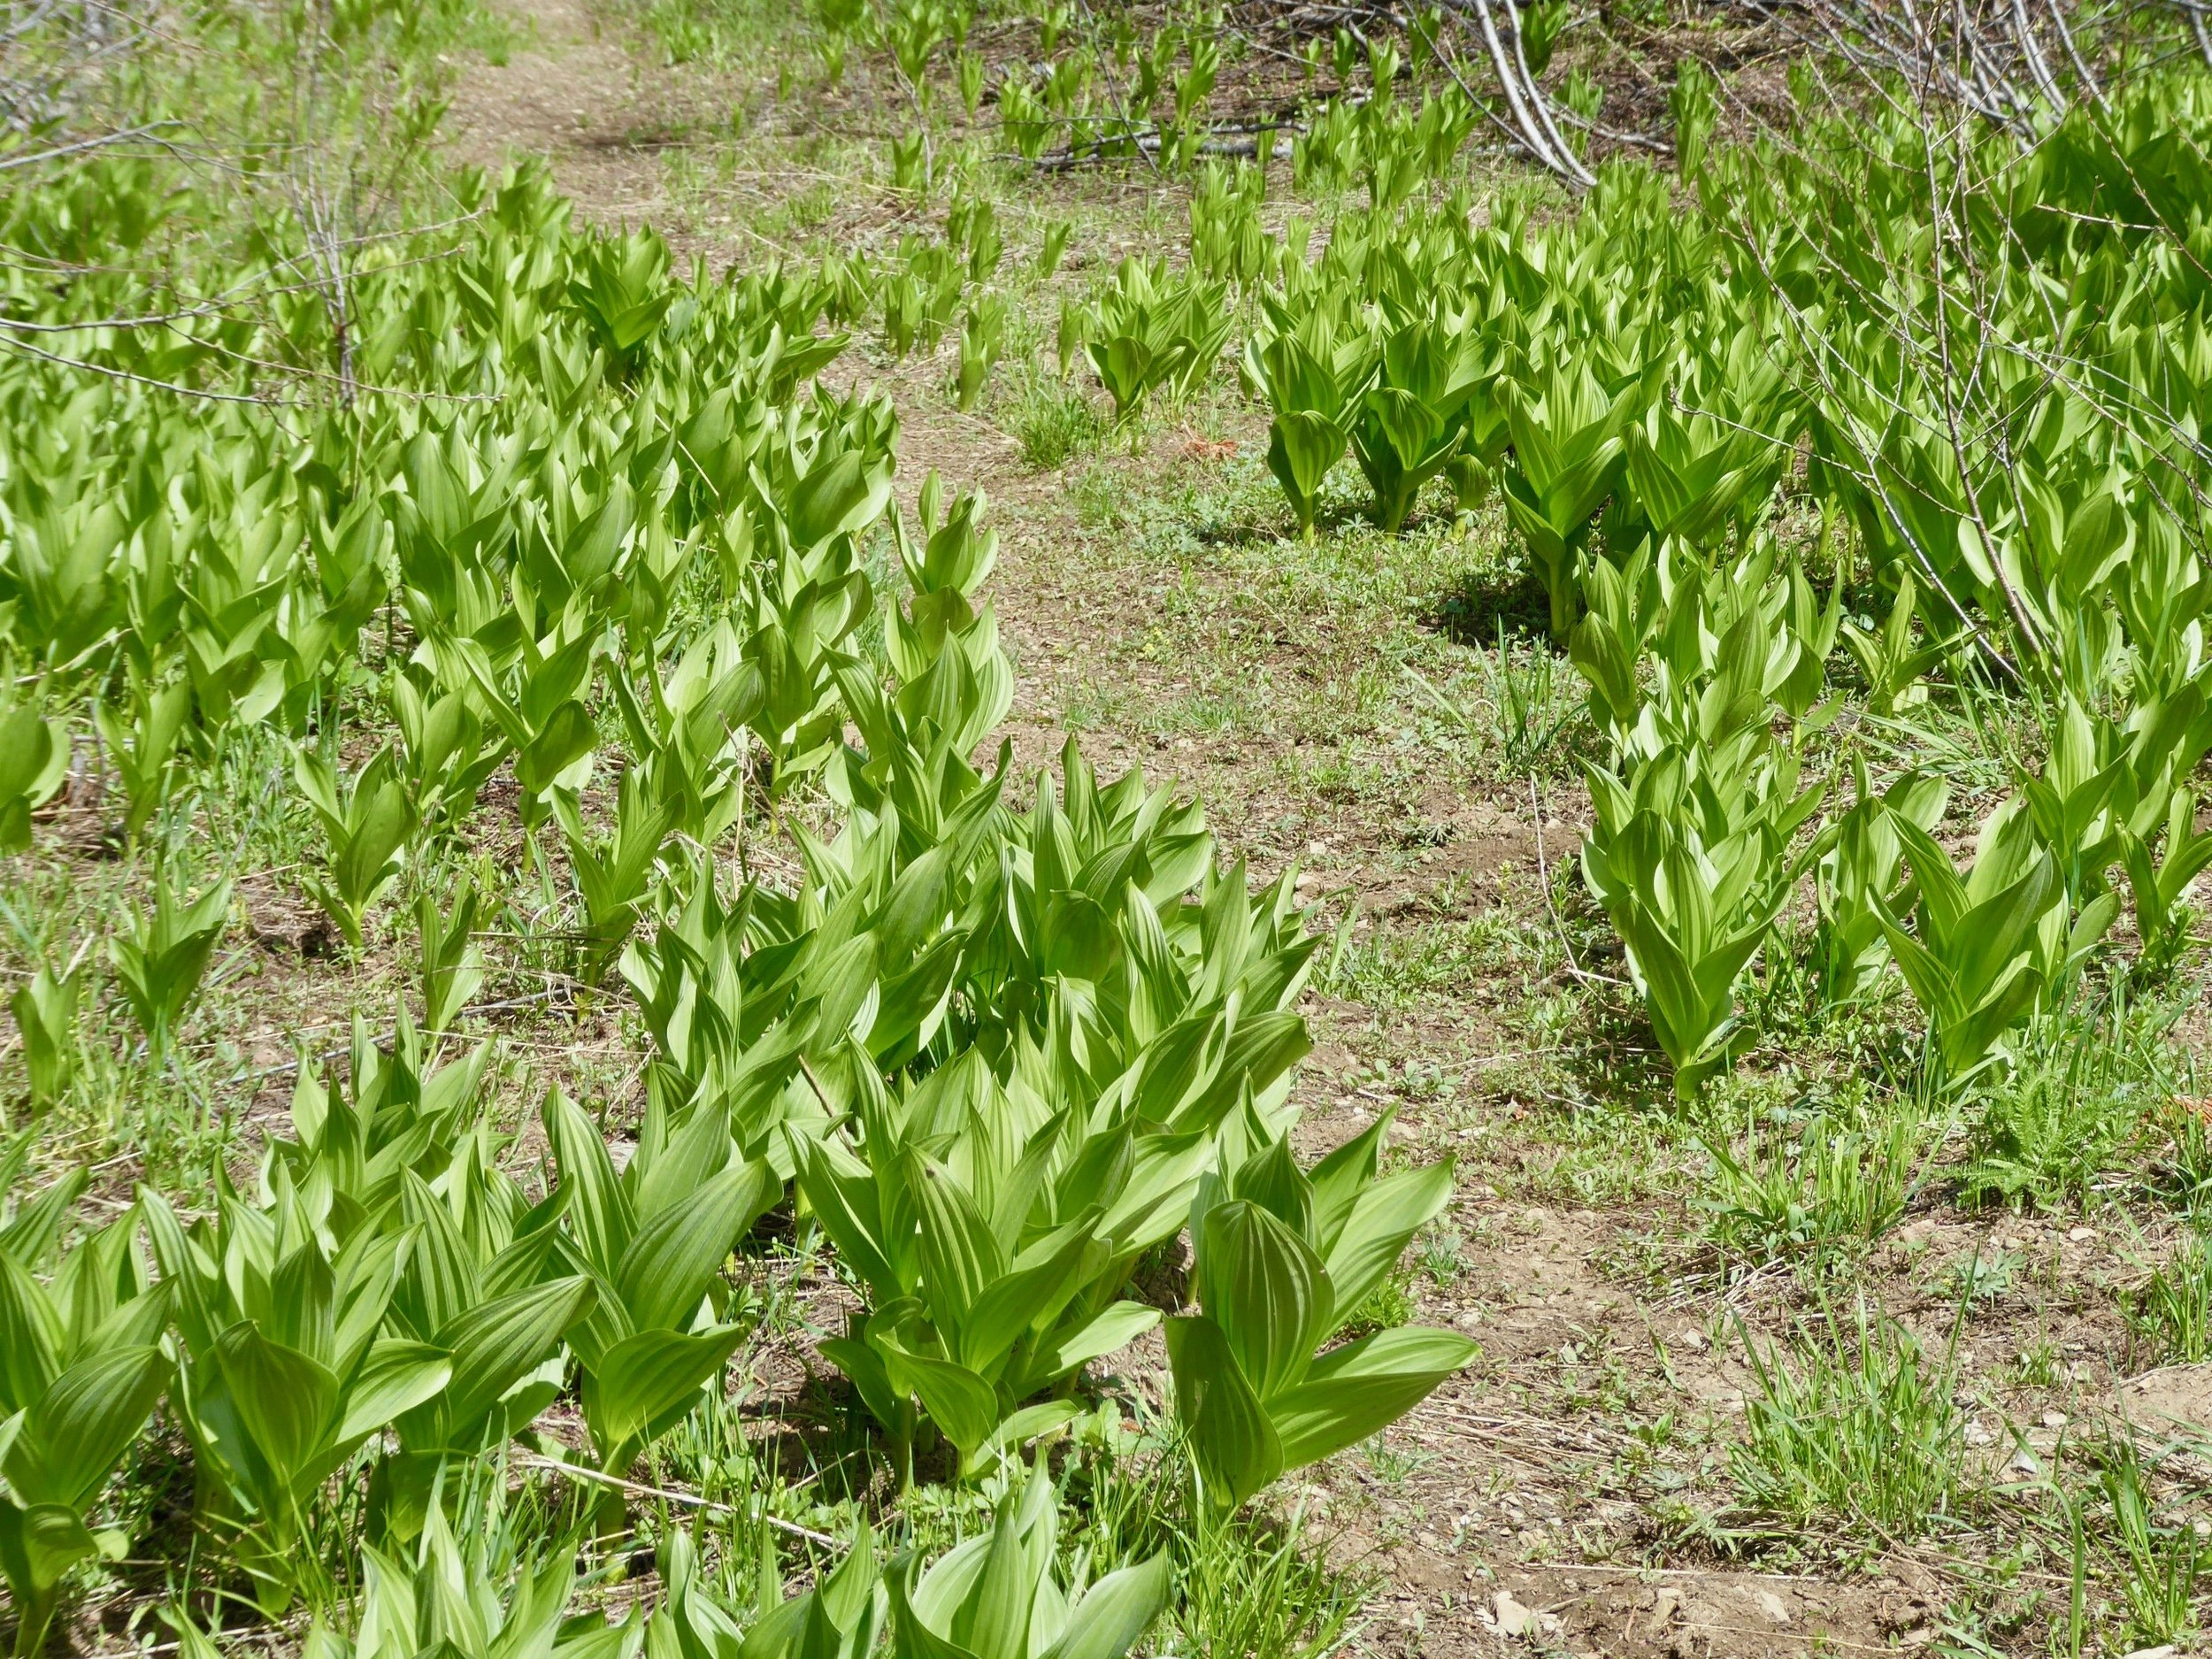 False Hellebore, a plant toxic to humans and animals